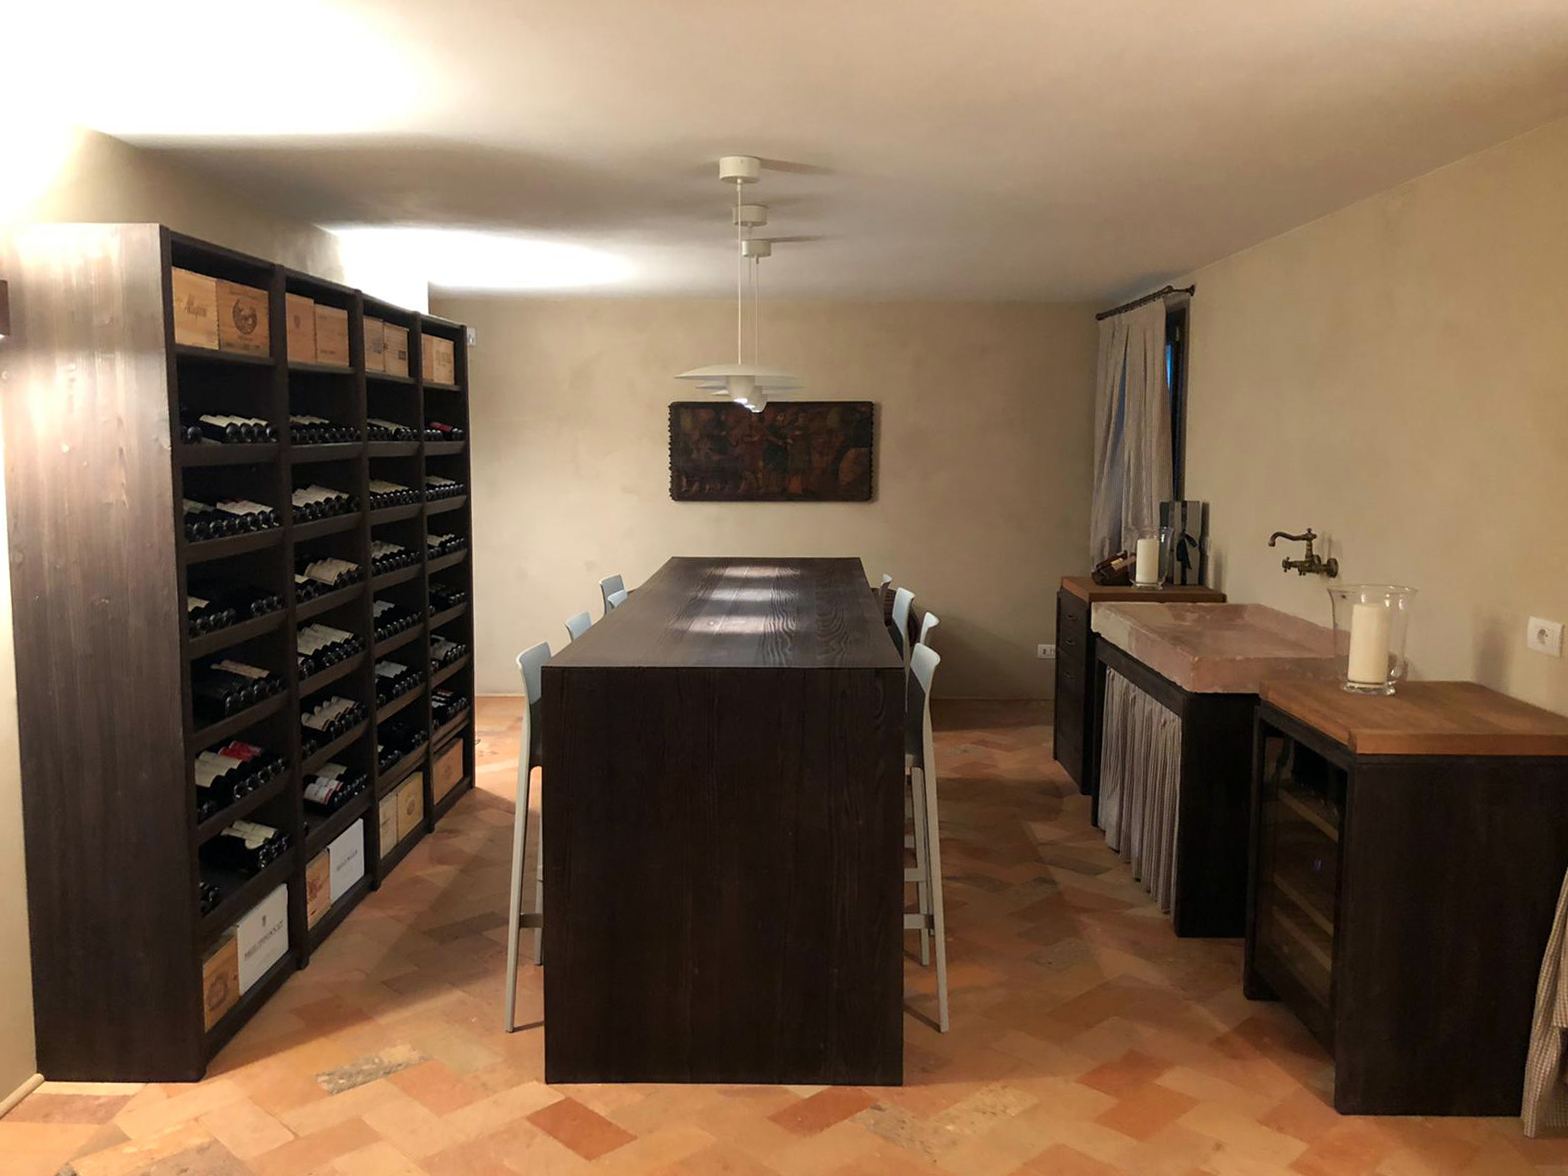 Cantine Private (165)